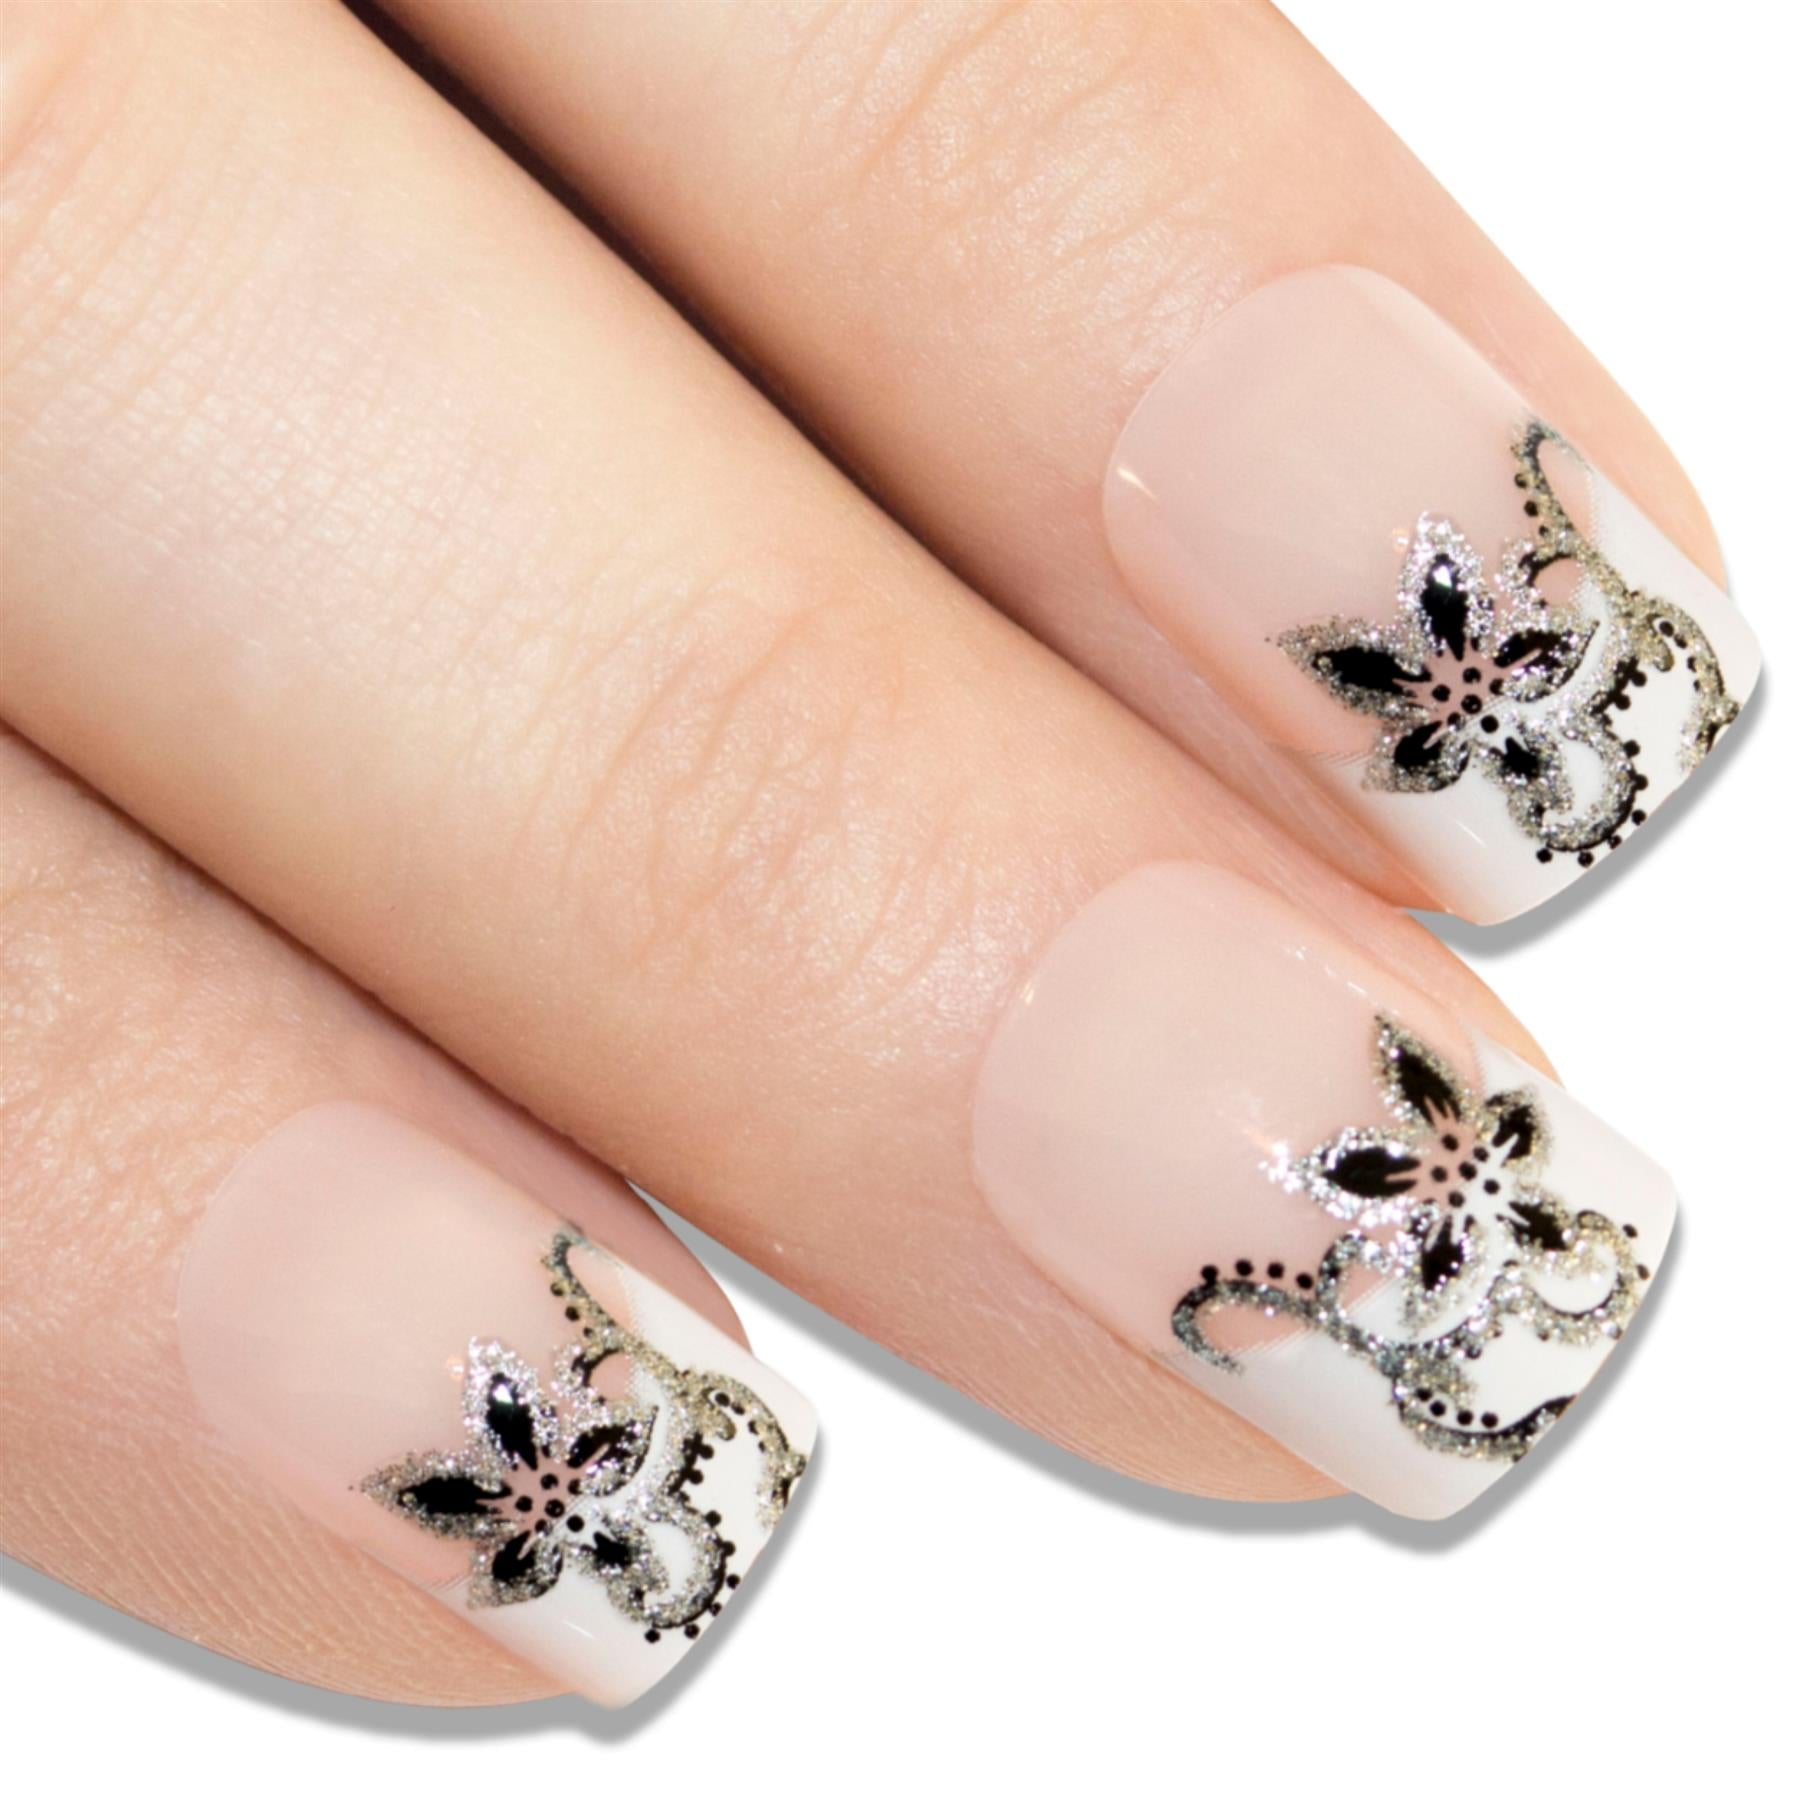 False Nails by Bling Art Black White French Manicure Fake Medium Tips with Glue, Nail Care by Bling Art